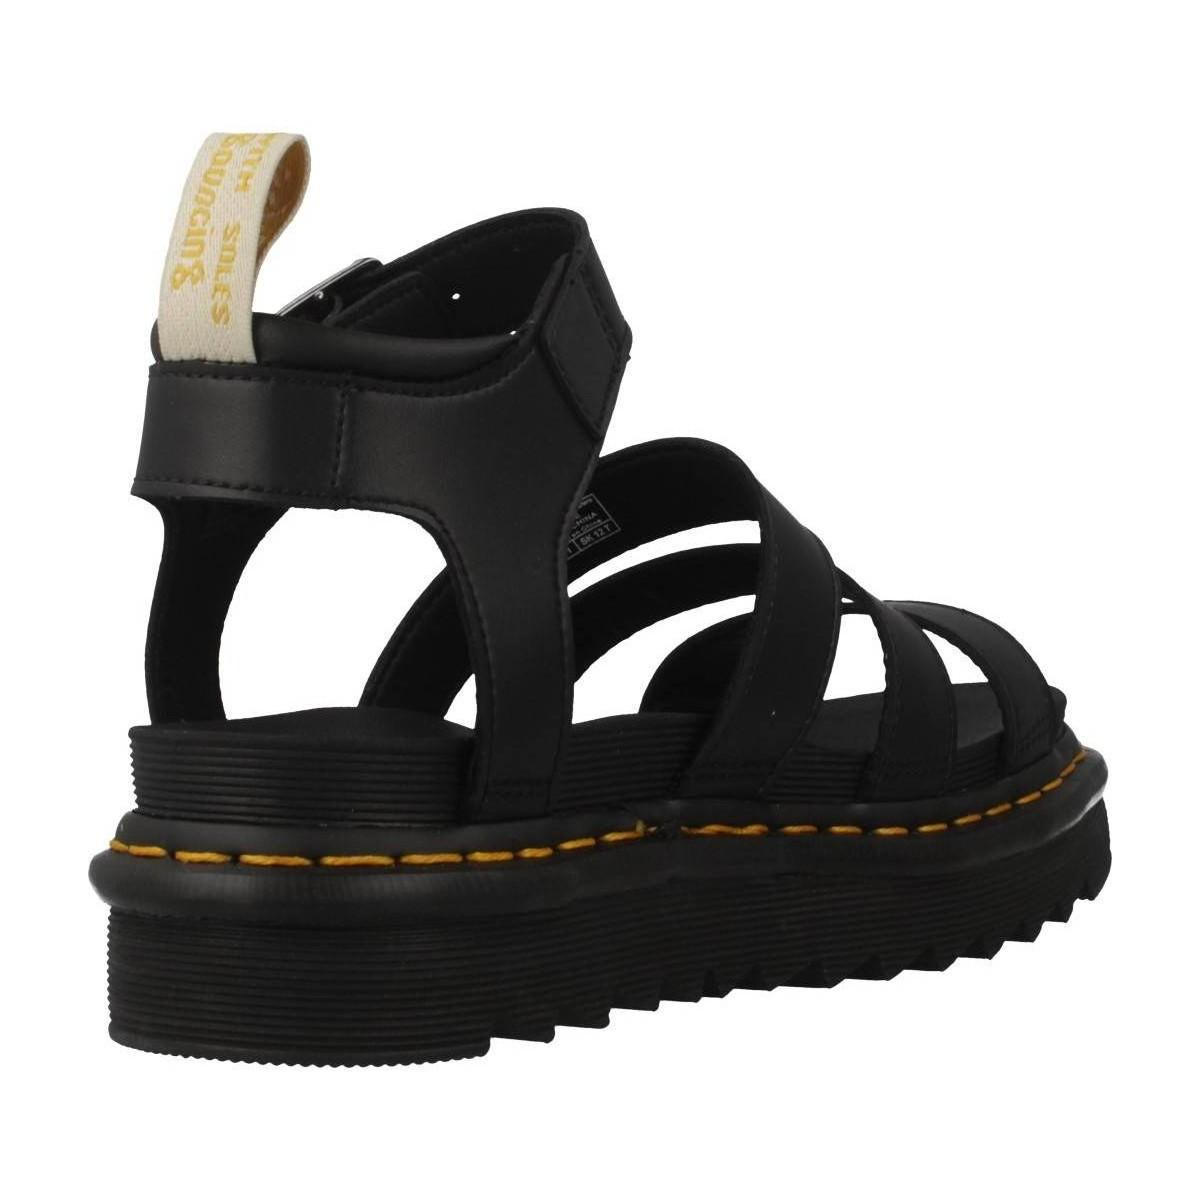 23806001 Women's Sandals In Black